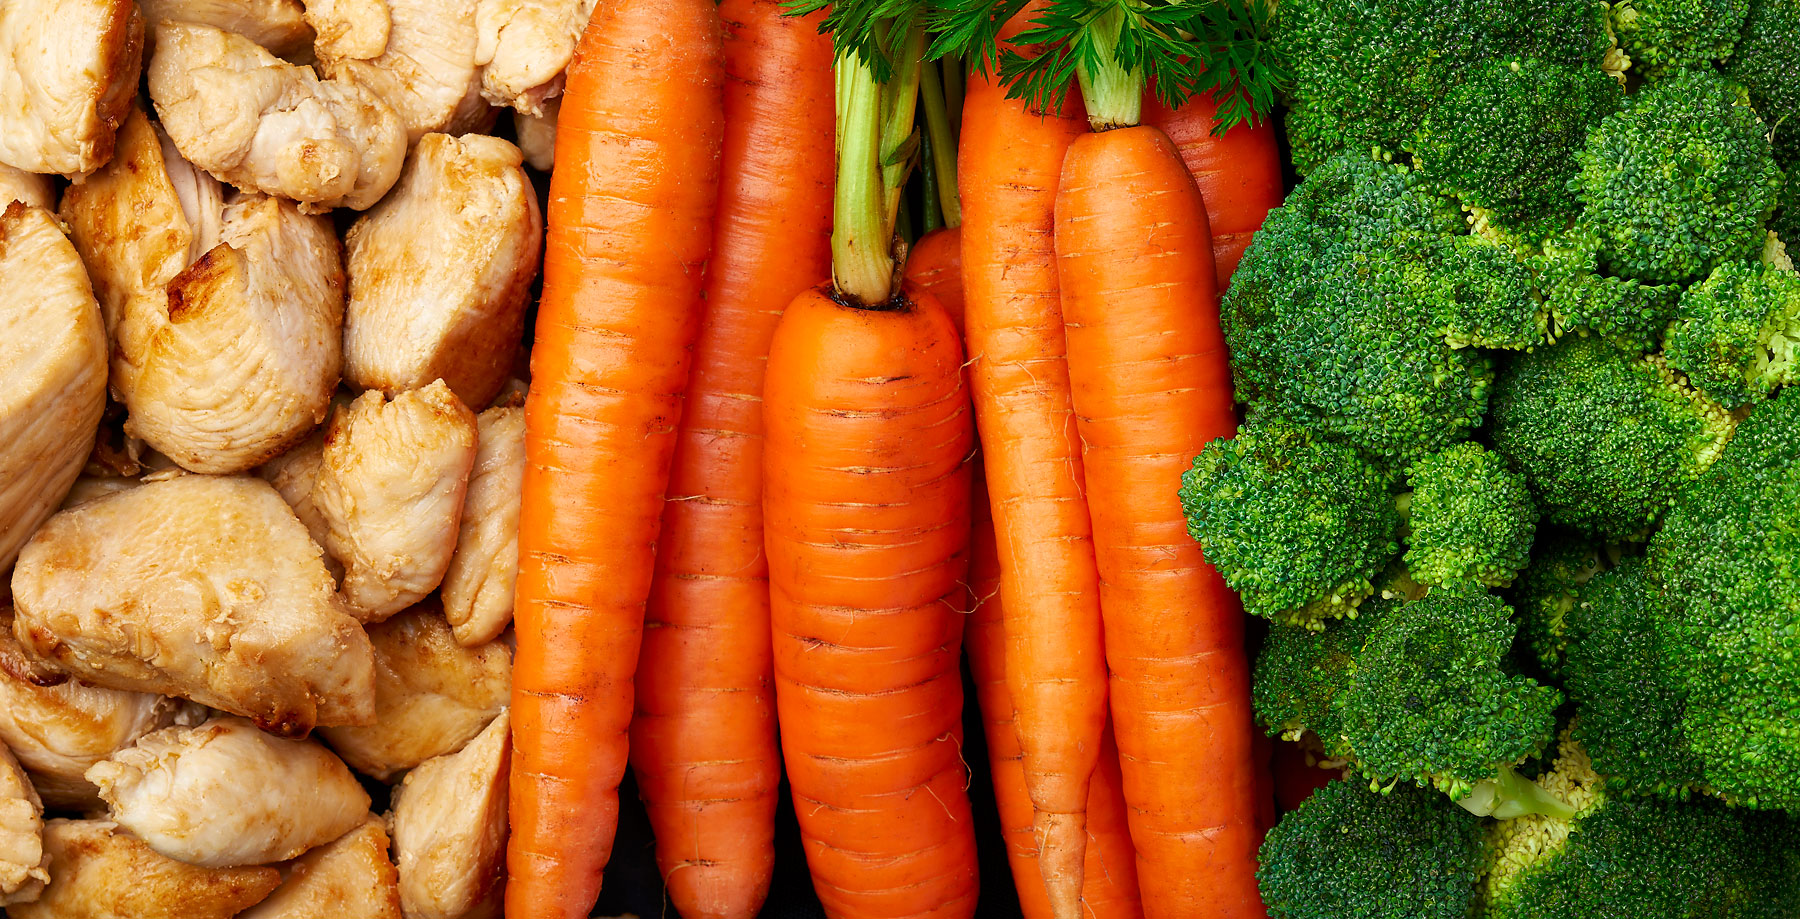 Chicken, carrots and broccoli